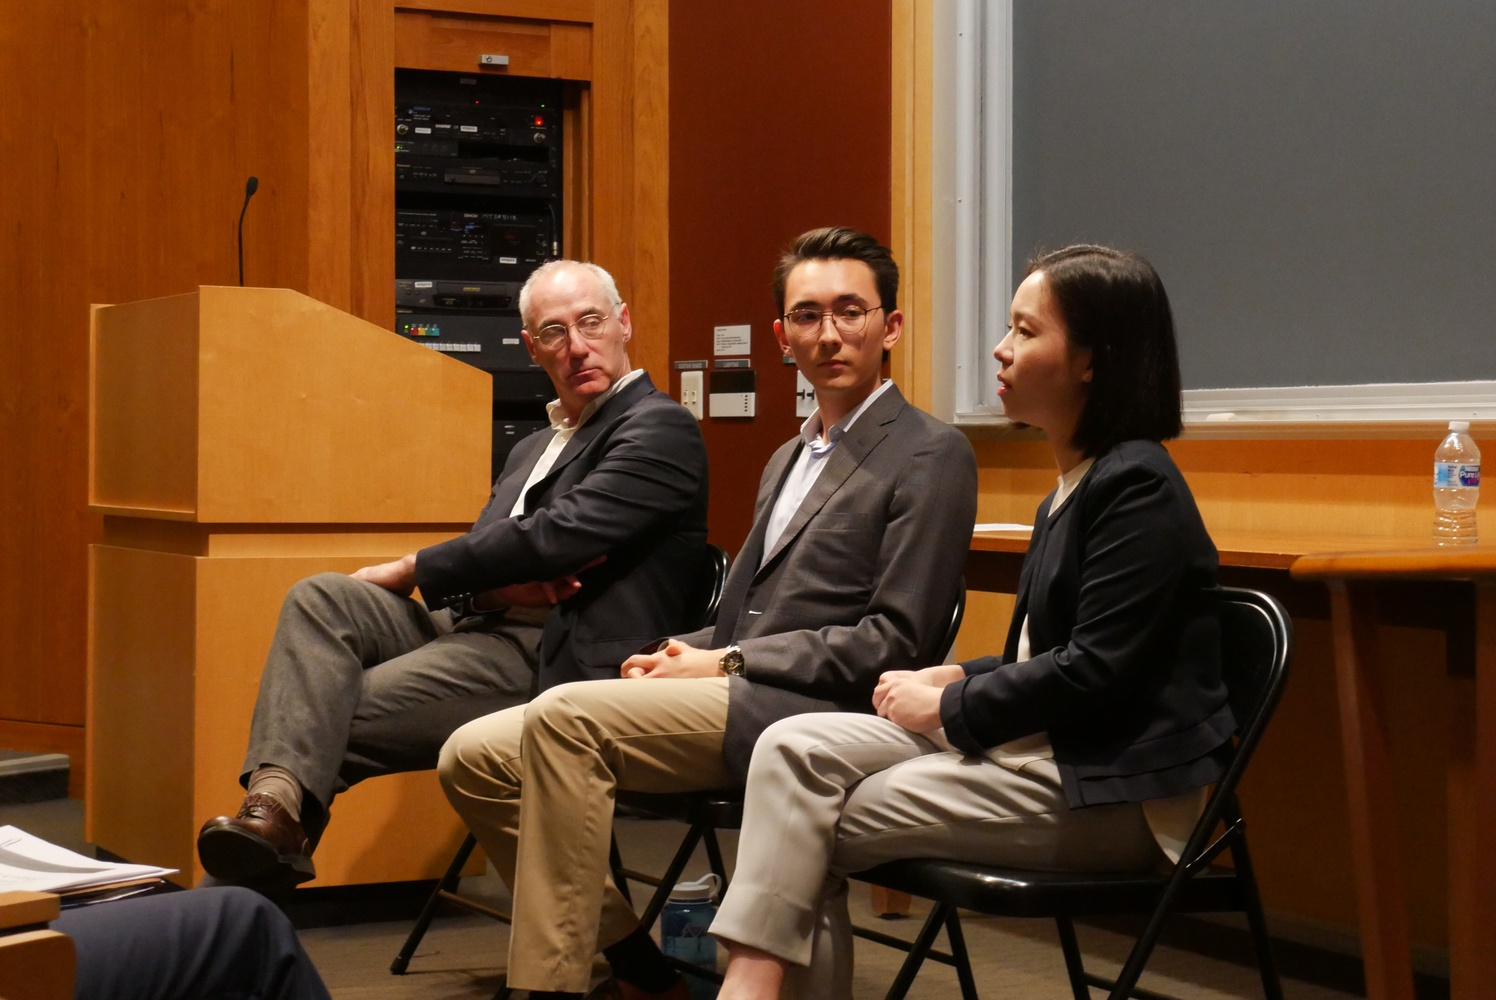 Brett Flehinger, the Secretary of the Honor Council, Jack W. Jue '18, and Margery W. Tong '17 speak at a town-hall meeting on the Honor Code.